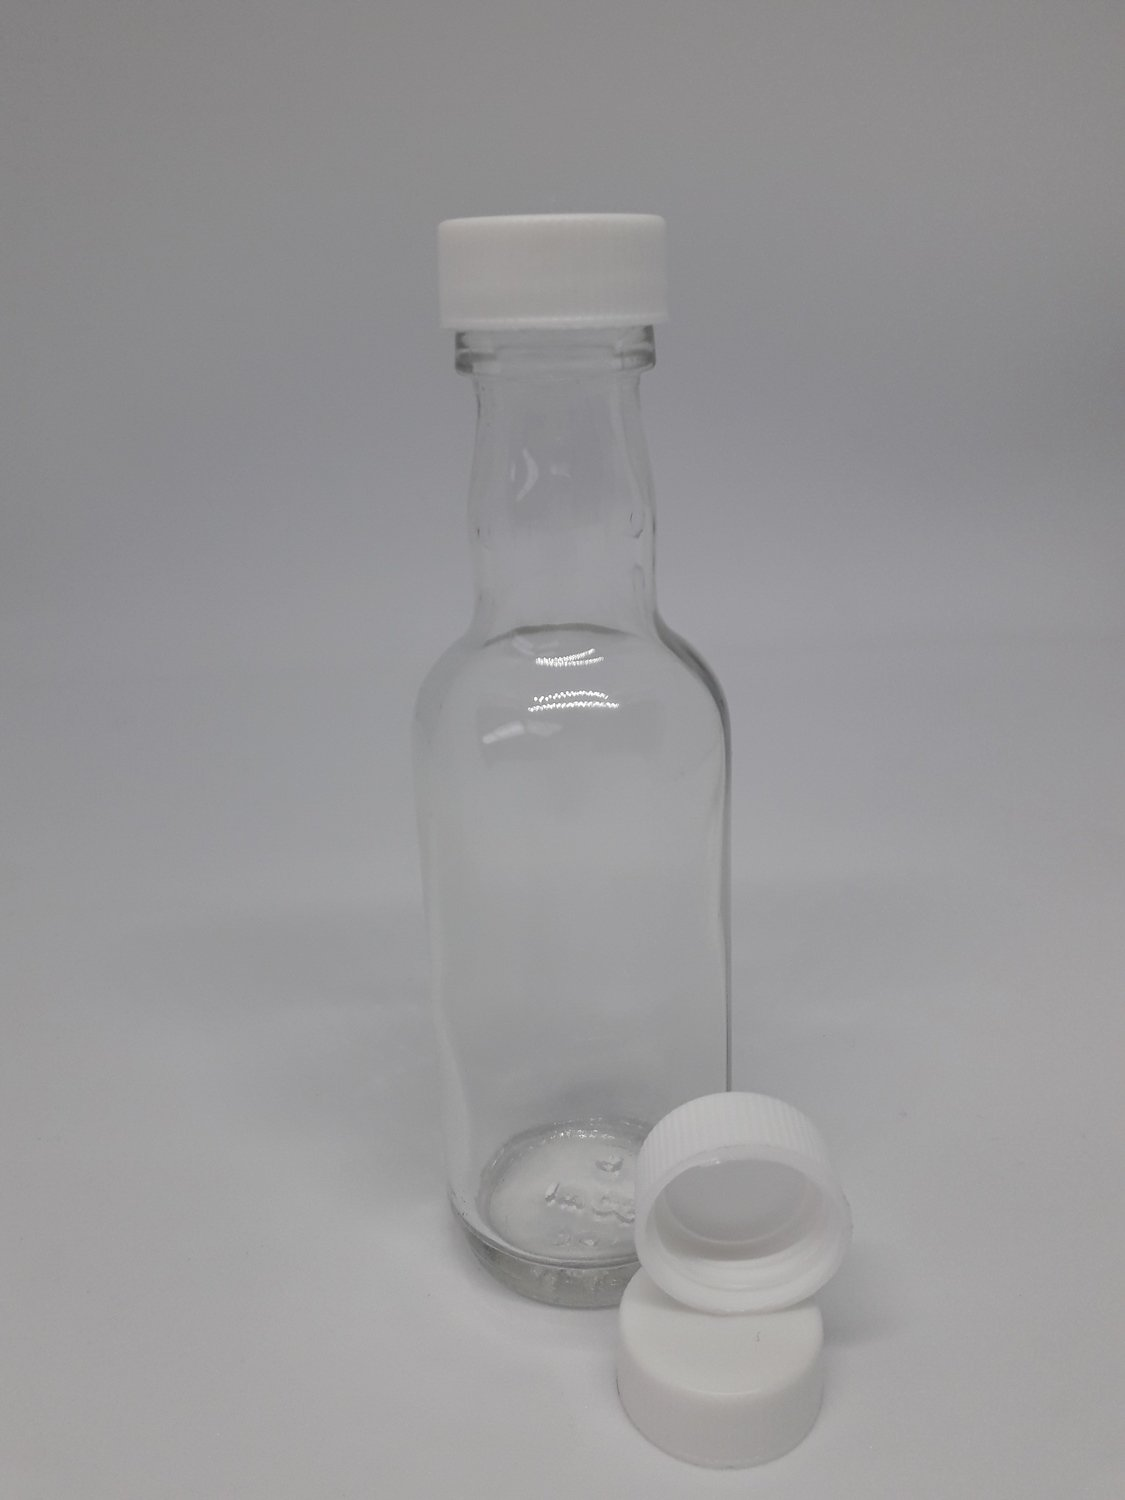 50ml Mini Spirit Bottle with white cap